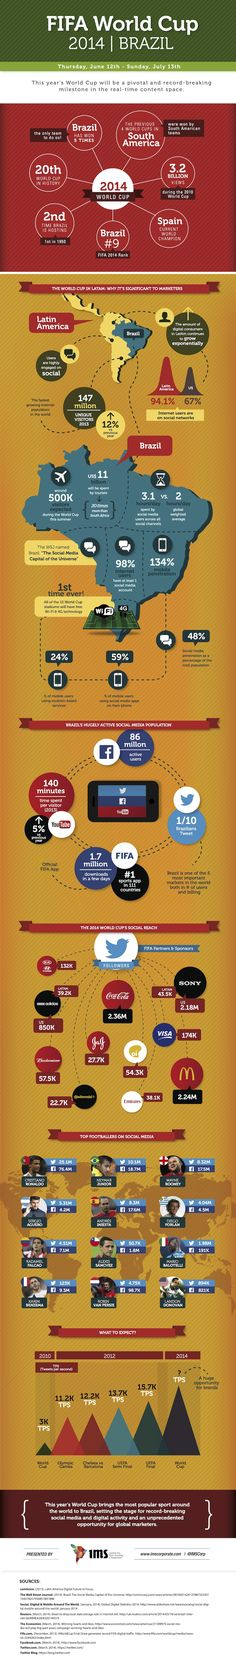 Why Brazil 2014 Will Be The First Truly Social World Cup | #socialmedia #Infographic repinned by @Piktochart | Create yours at www.piktochart.com